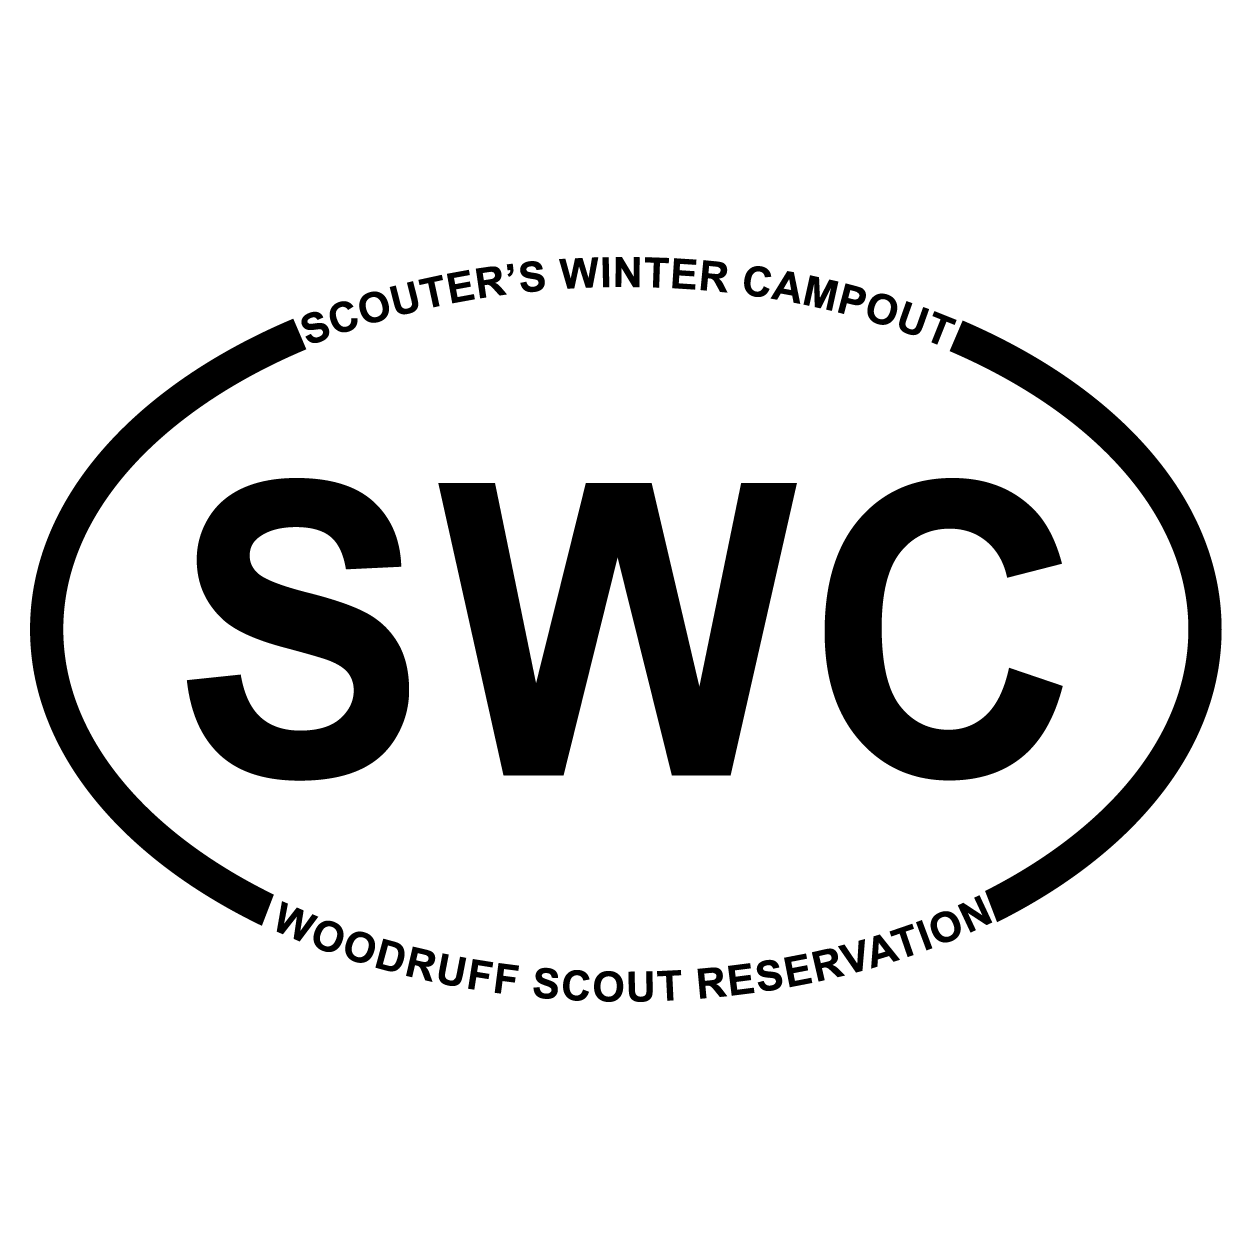 Scouters' Winter Campout